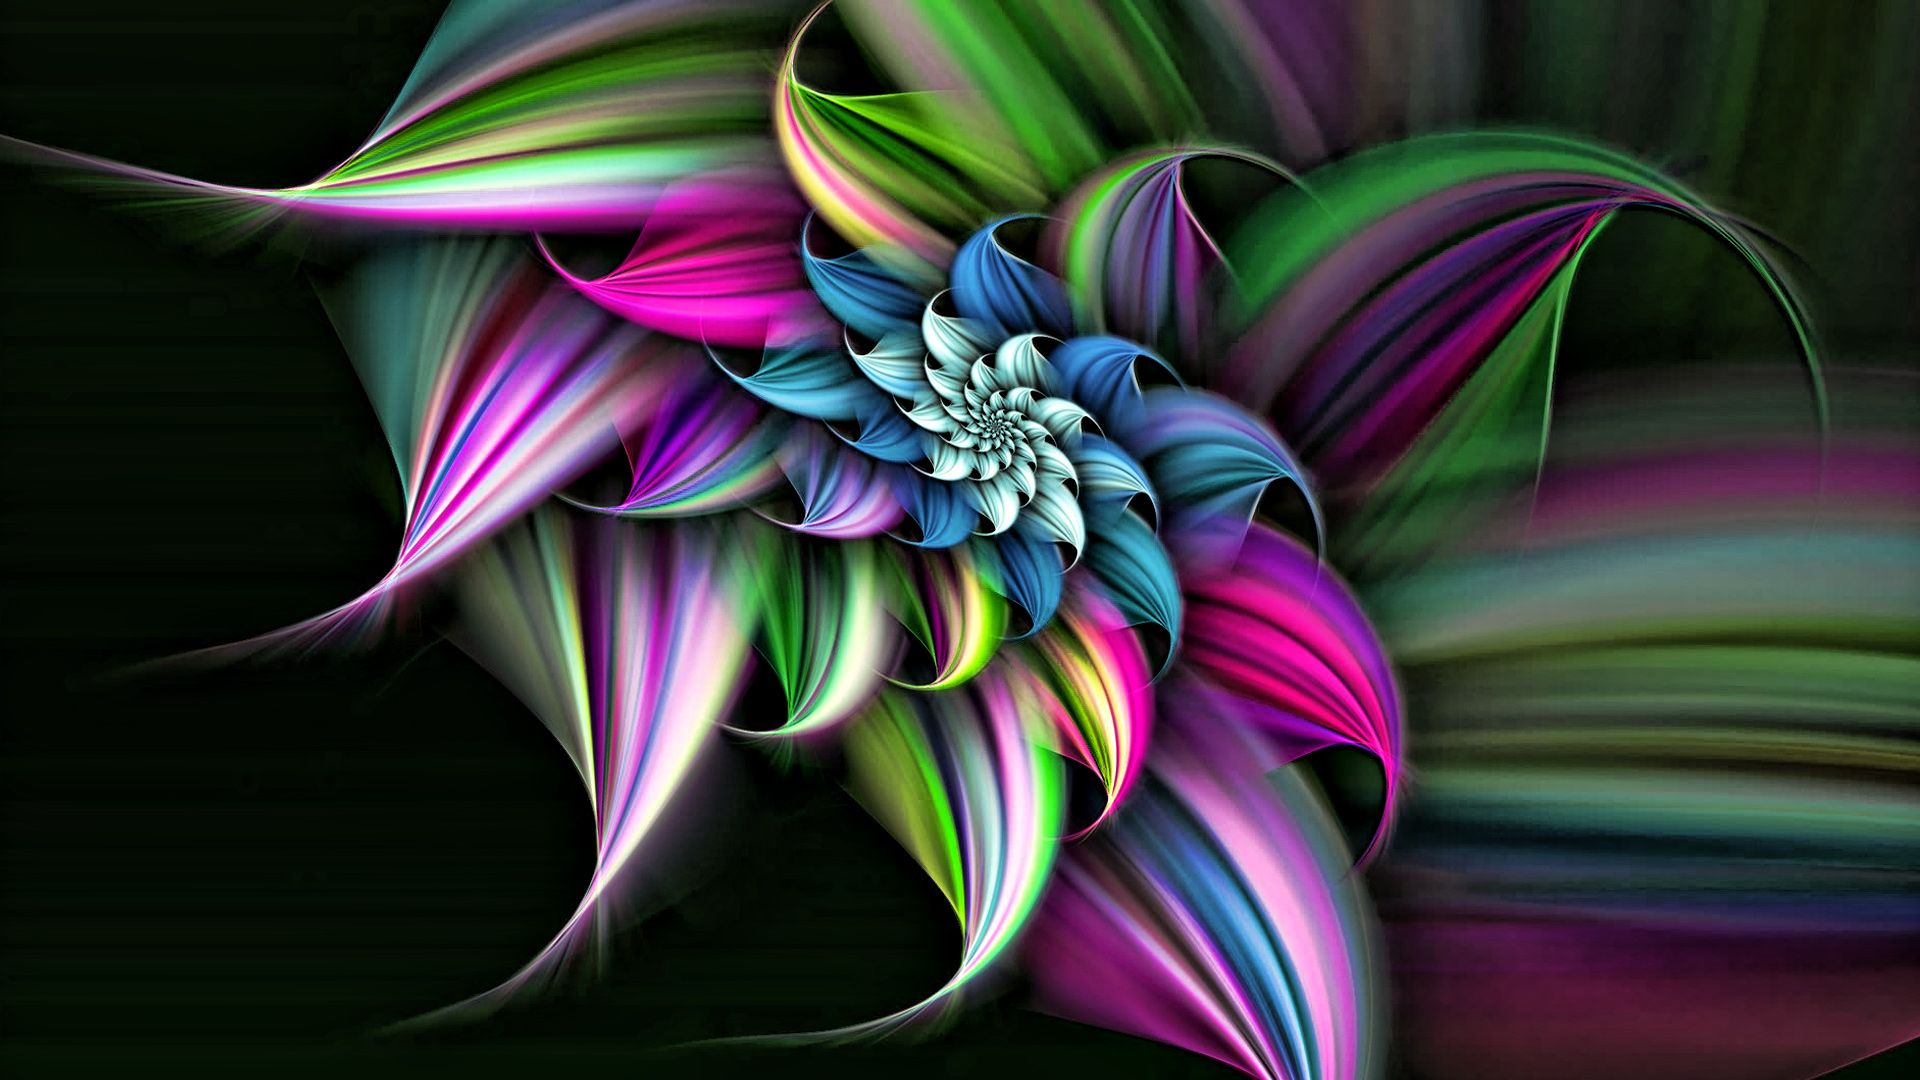 3d images rainbow flower wallpapers free download wallpaper 3d images rainbow flower wallpapers free download wallpaper thecheapjerseys Image collections